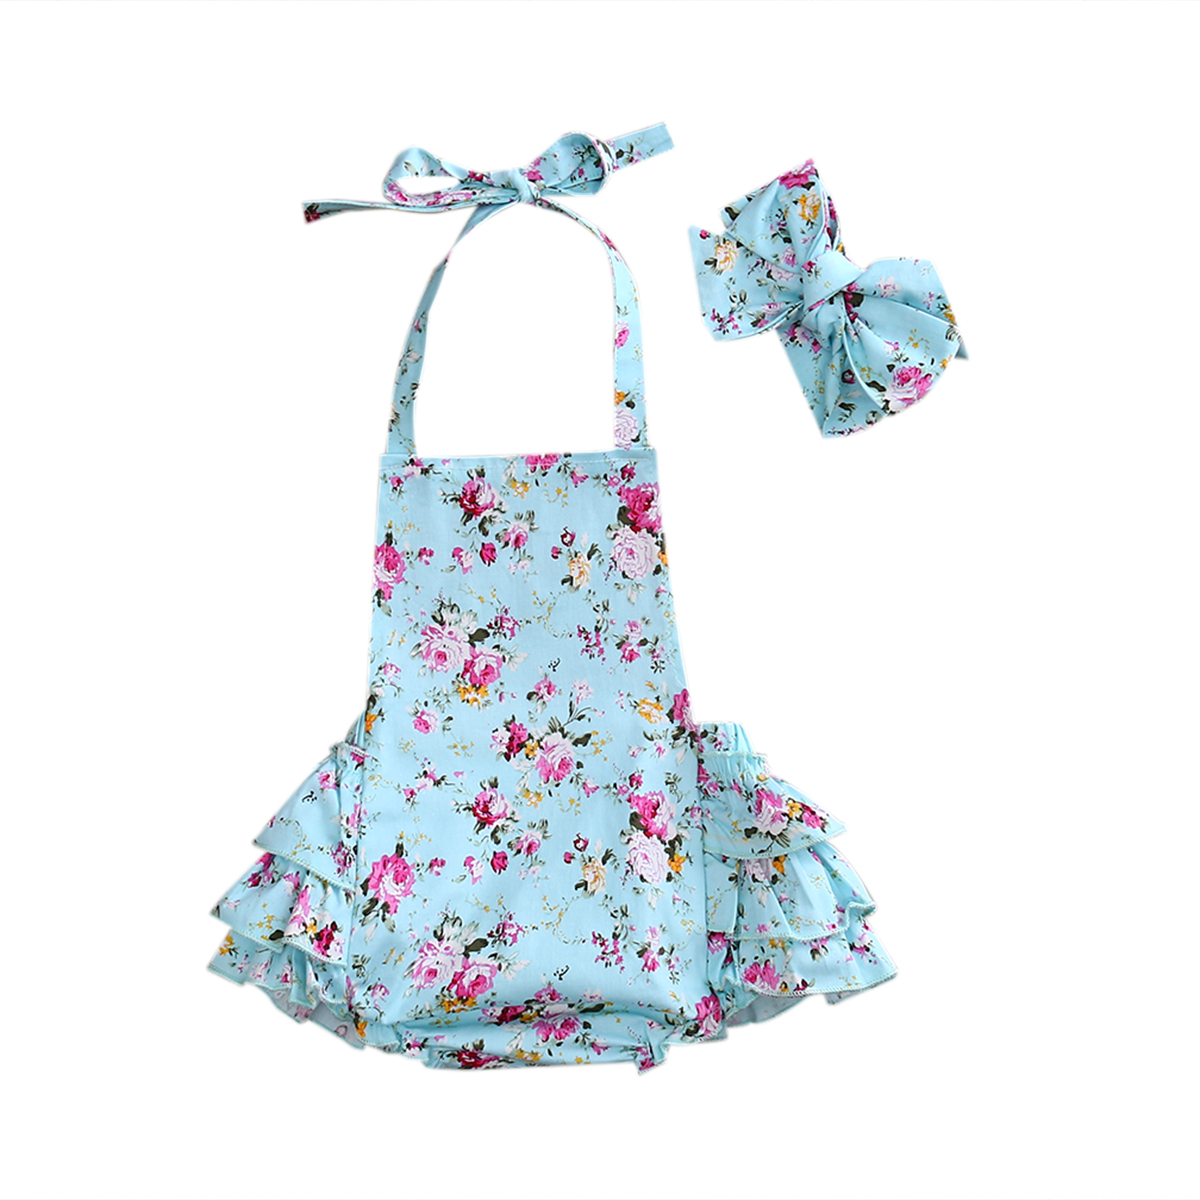 2017 Toddler Kids Infant Baby Clothes Girl Backless Floral Strap Romper Jumpsuit Cute Baby Girl Clothes Baby Onesie Outfit newborn infant baby girl clothes strap lace floral romper jumpsuit outfit summer cotton backless one pieces outfit baby onesie